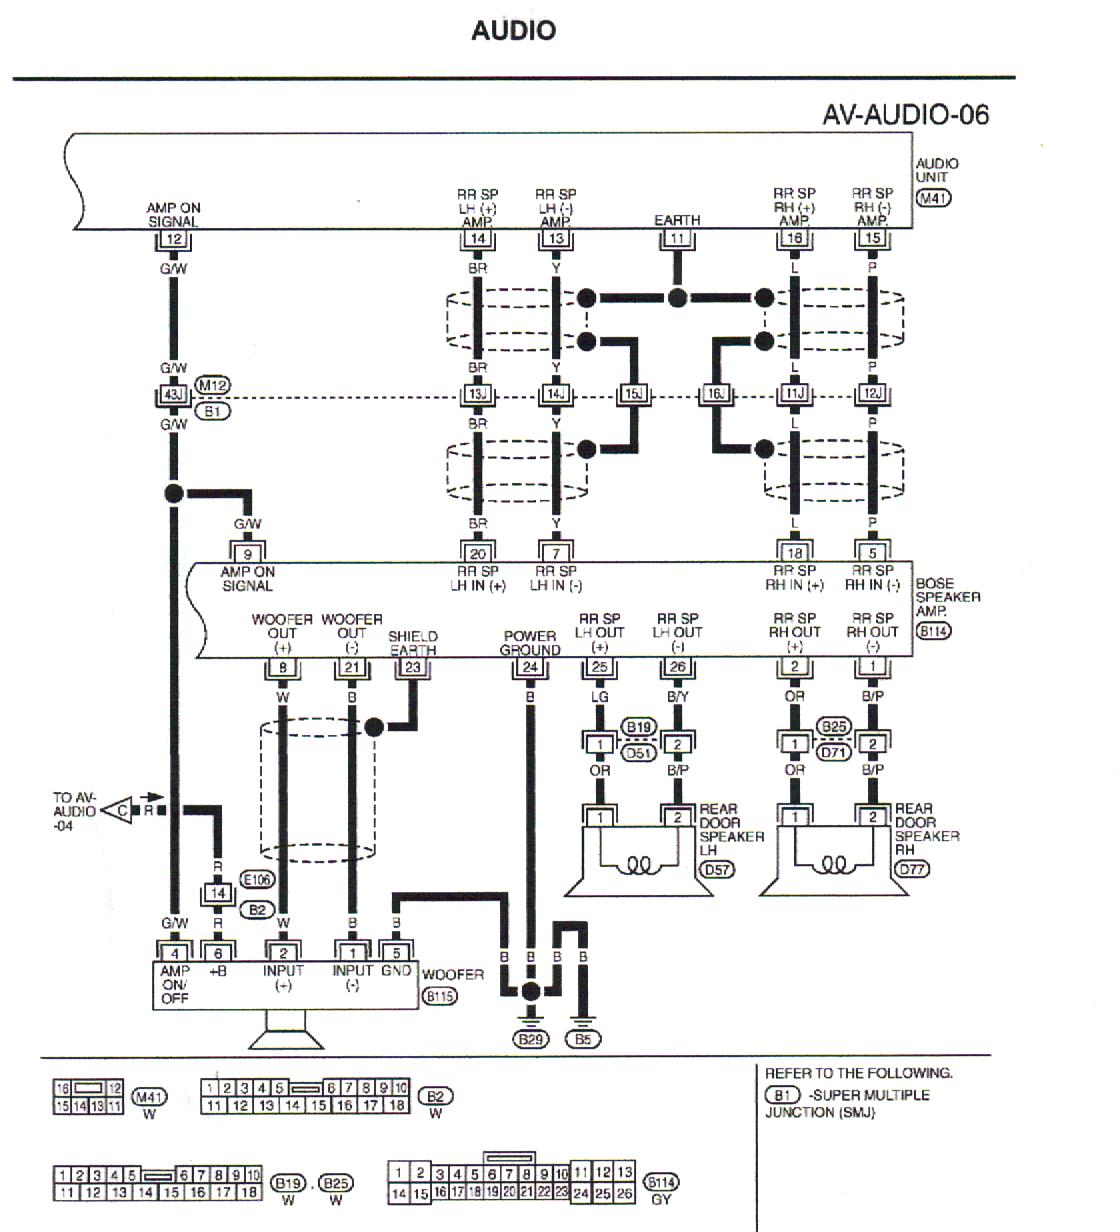 hight resolution of 2006 infiniti m35 bose amp diagram wiring diagram priv 2006 infiniti m35 bose amp diagram